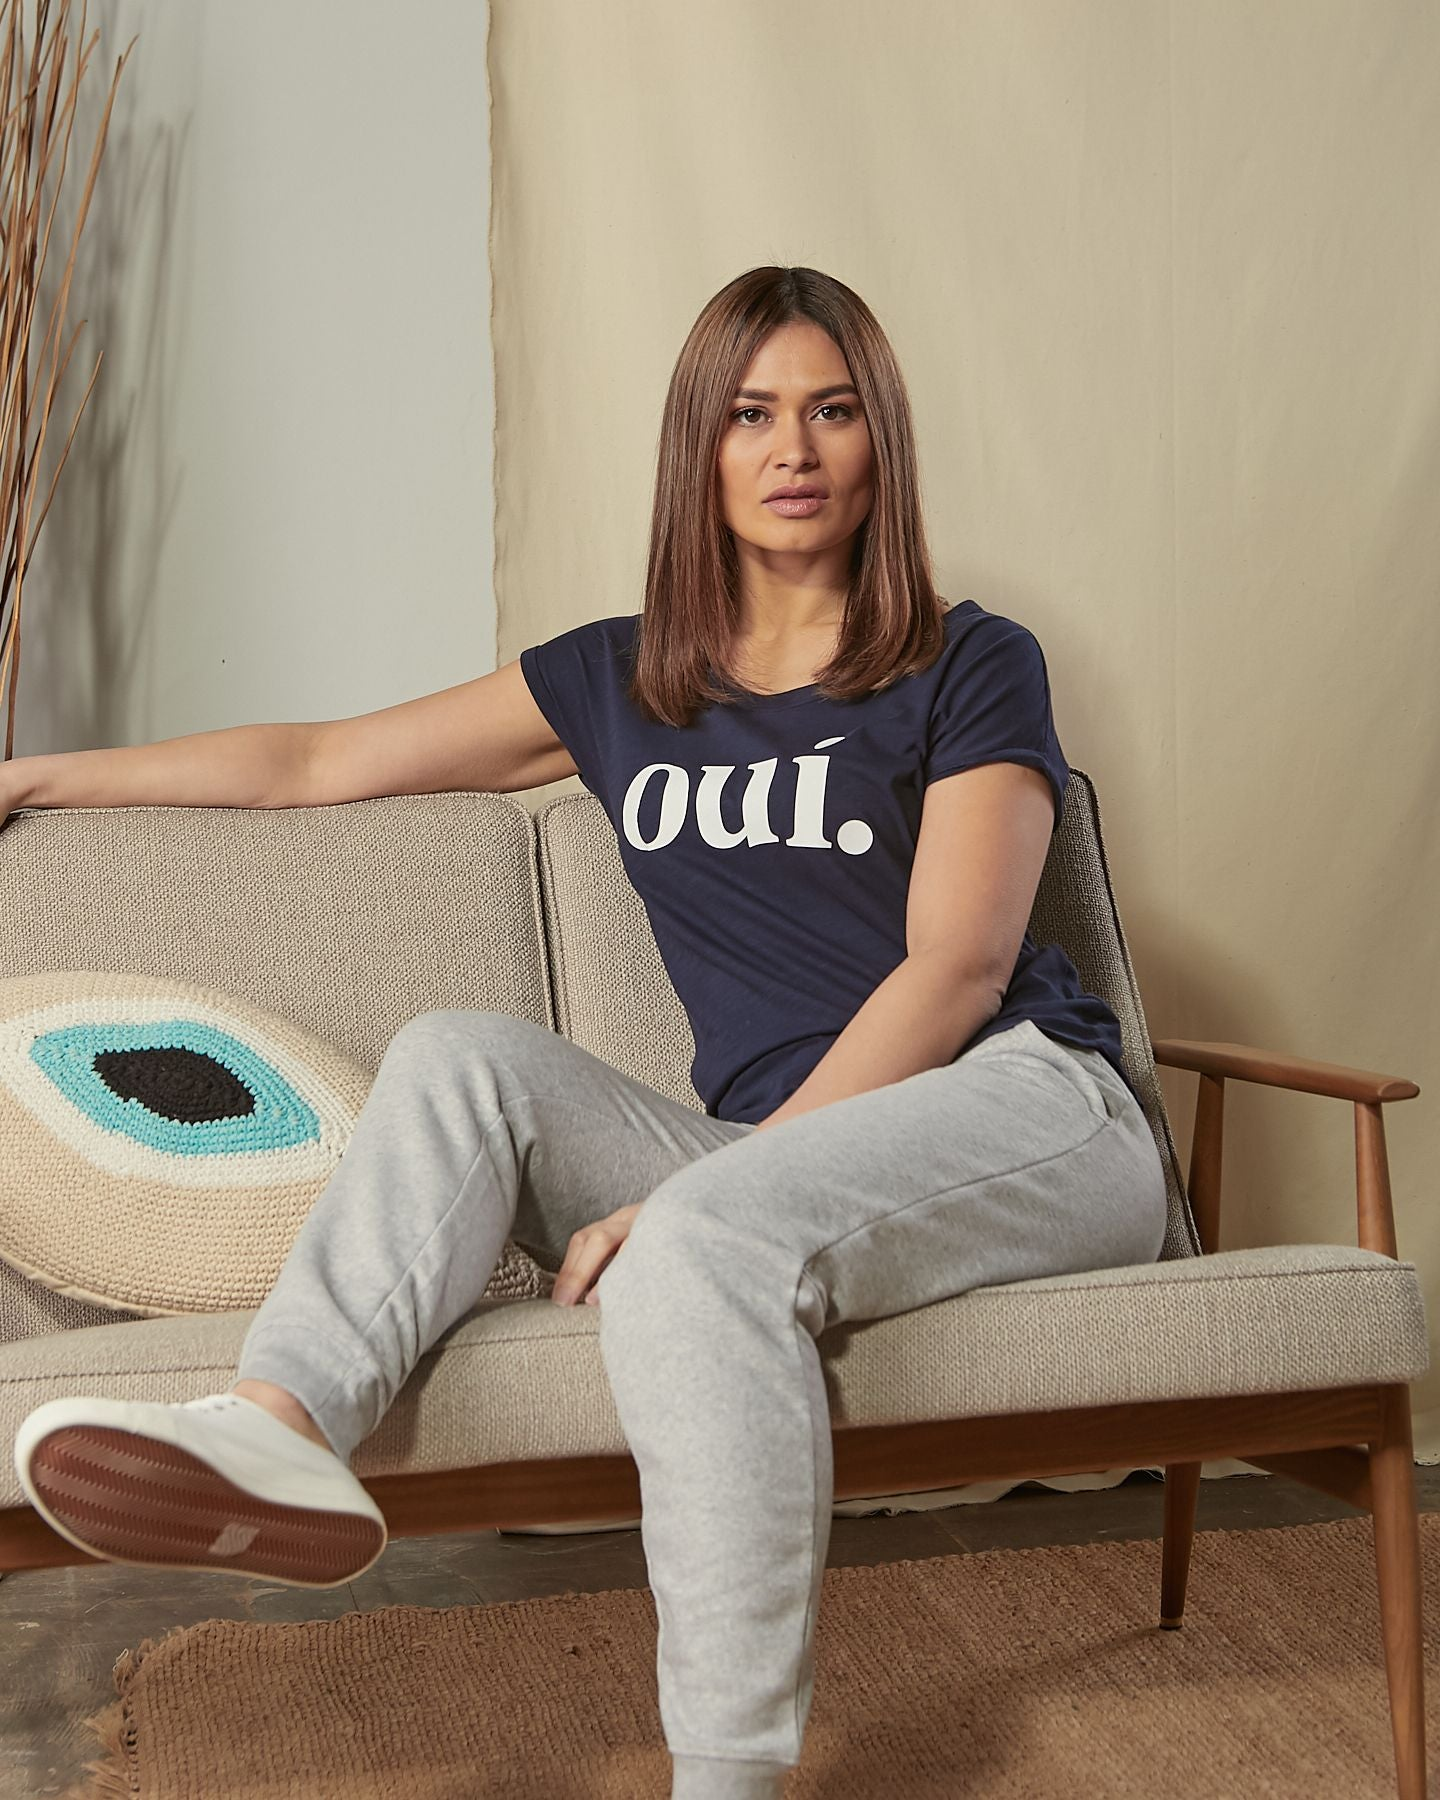 Sitting on sofa wearing blue 'Oui' t-shirt with gray pants.